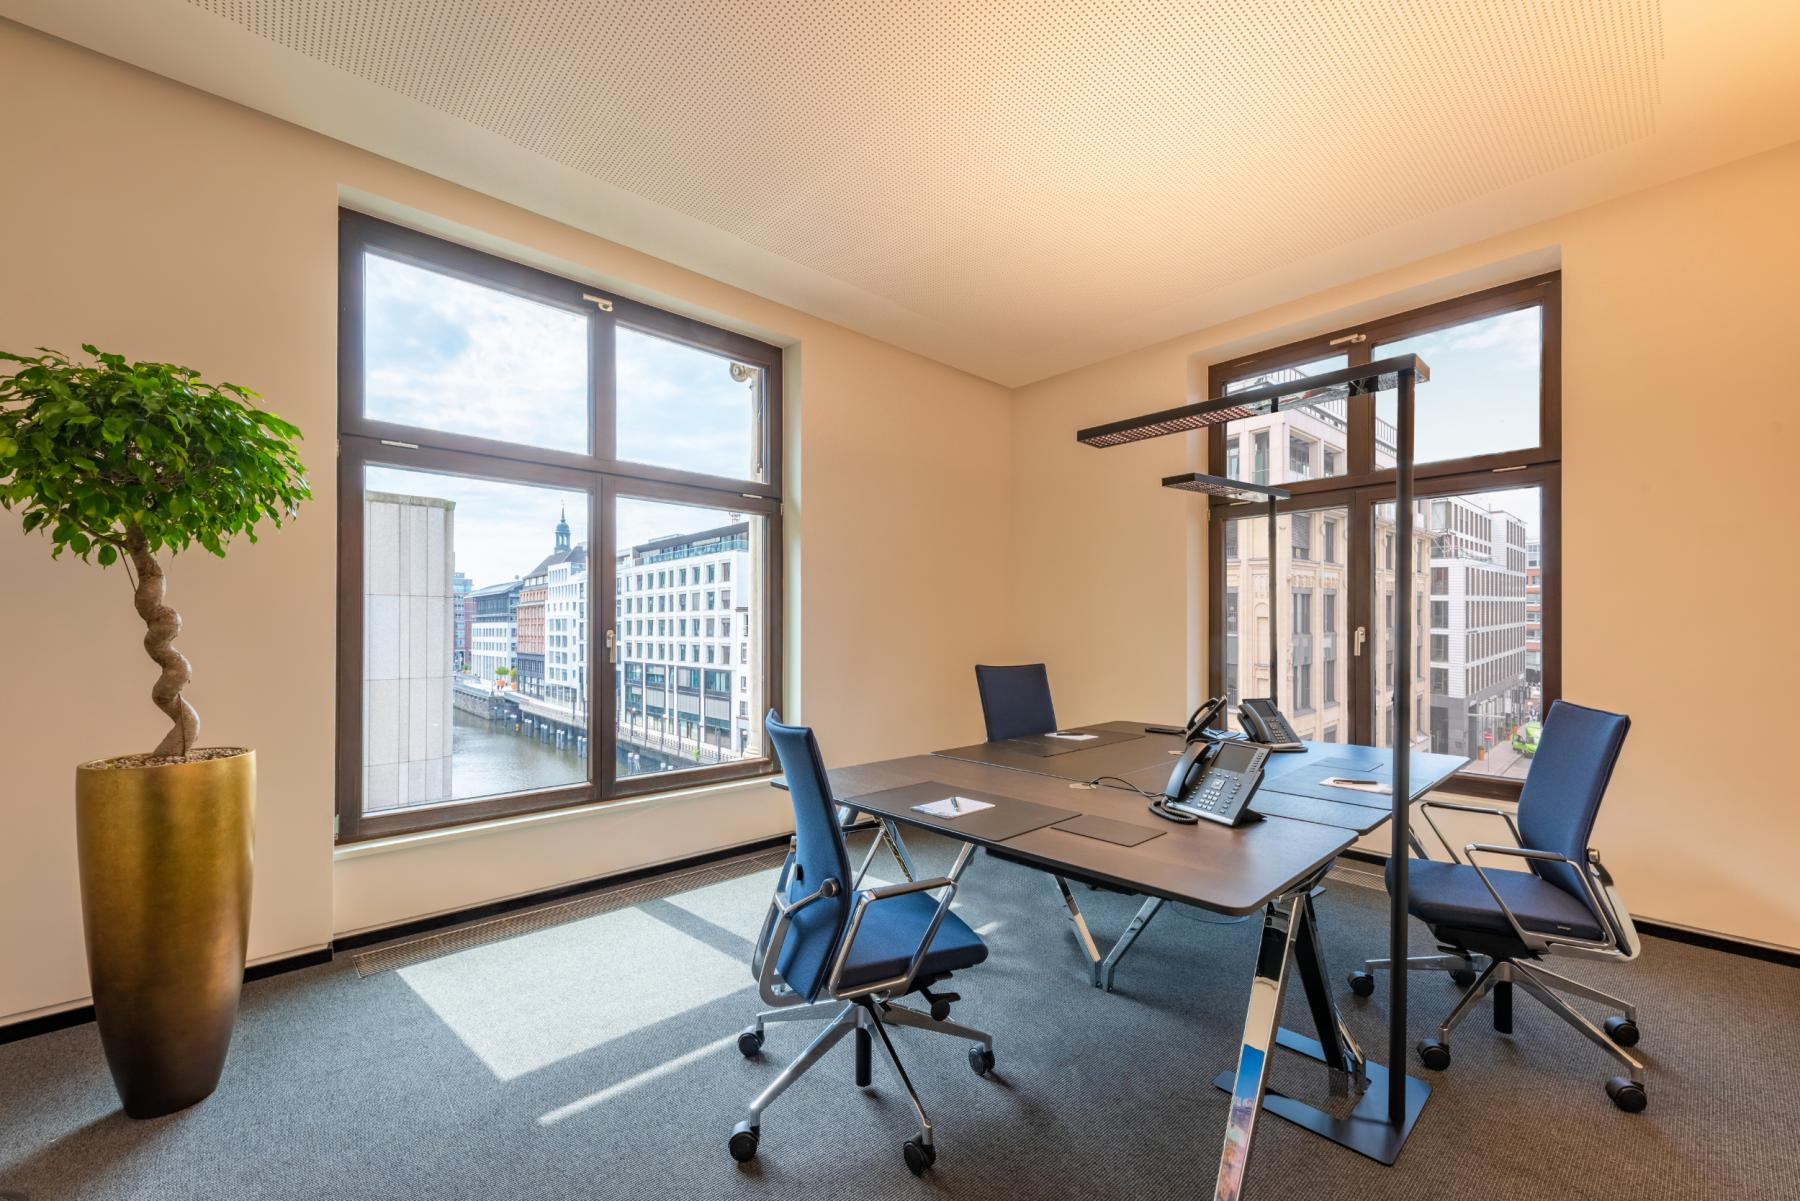 Modern office space for rent in Hamburg